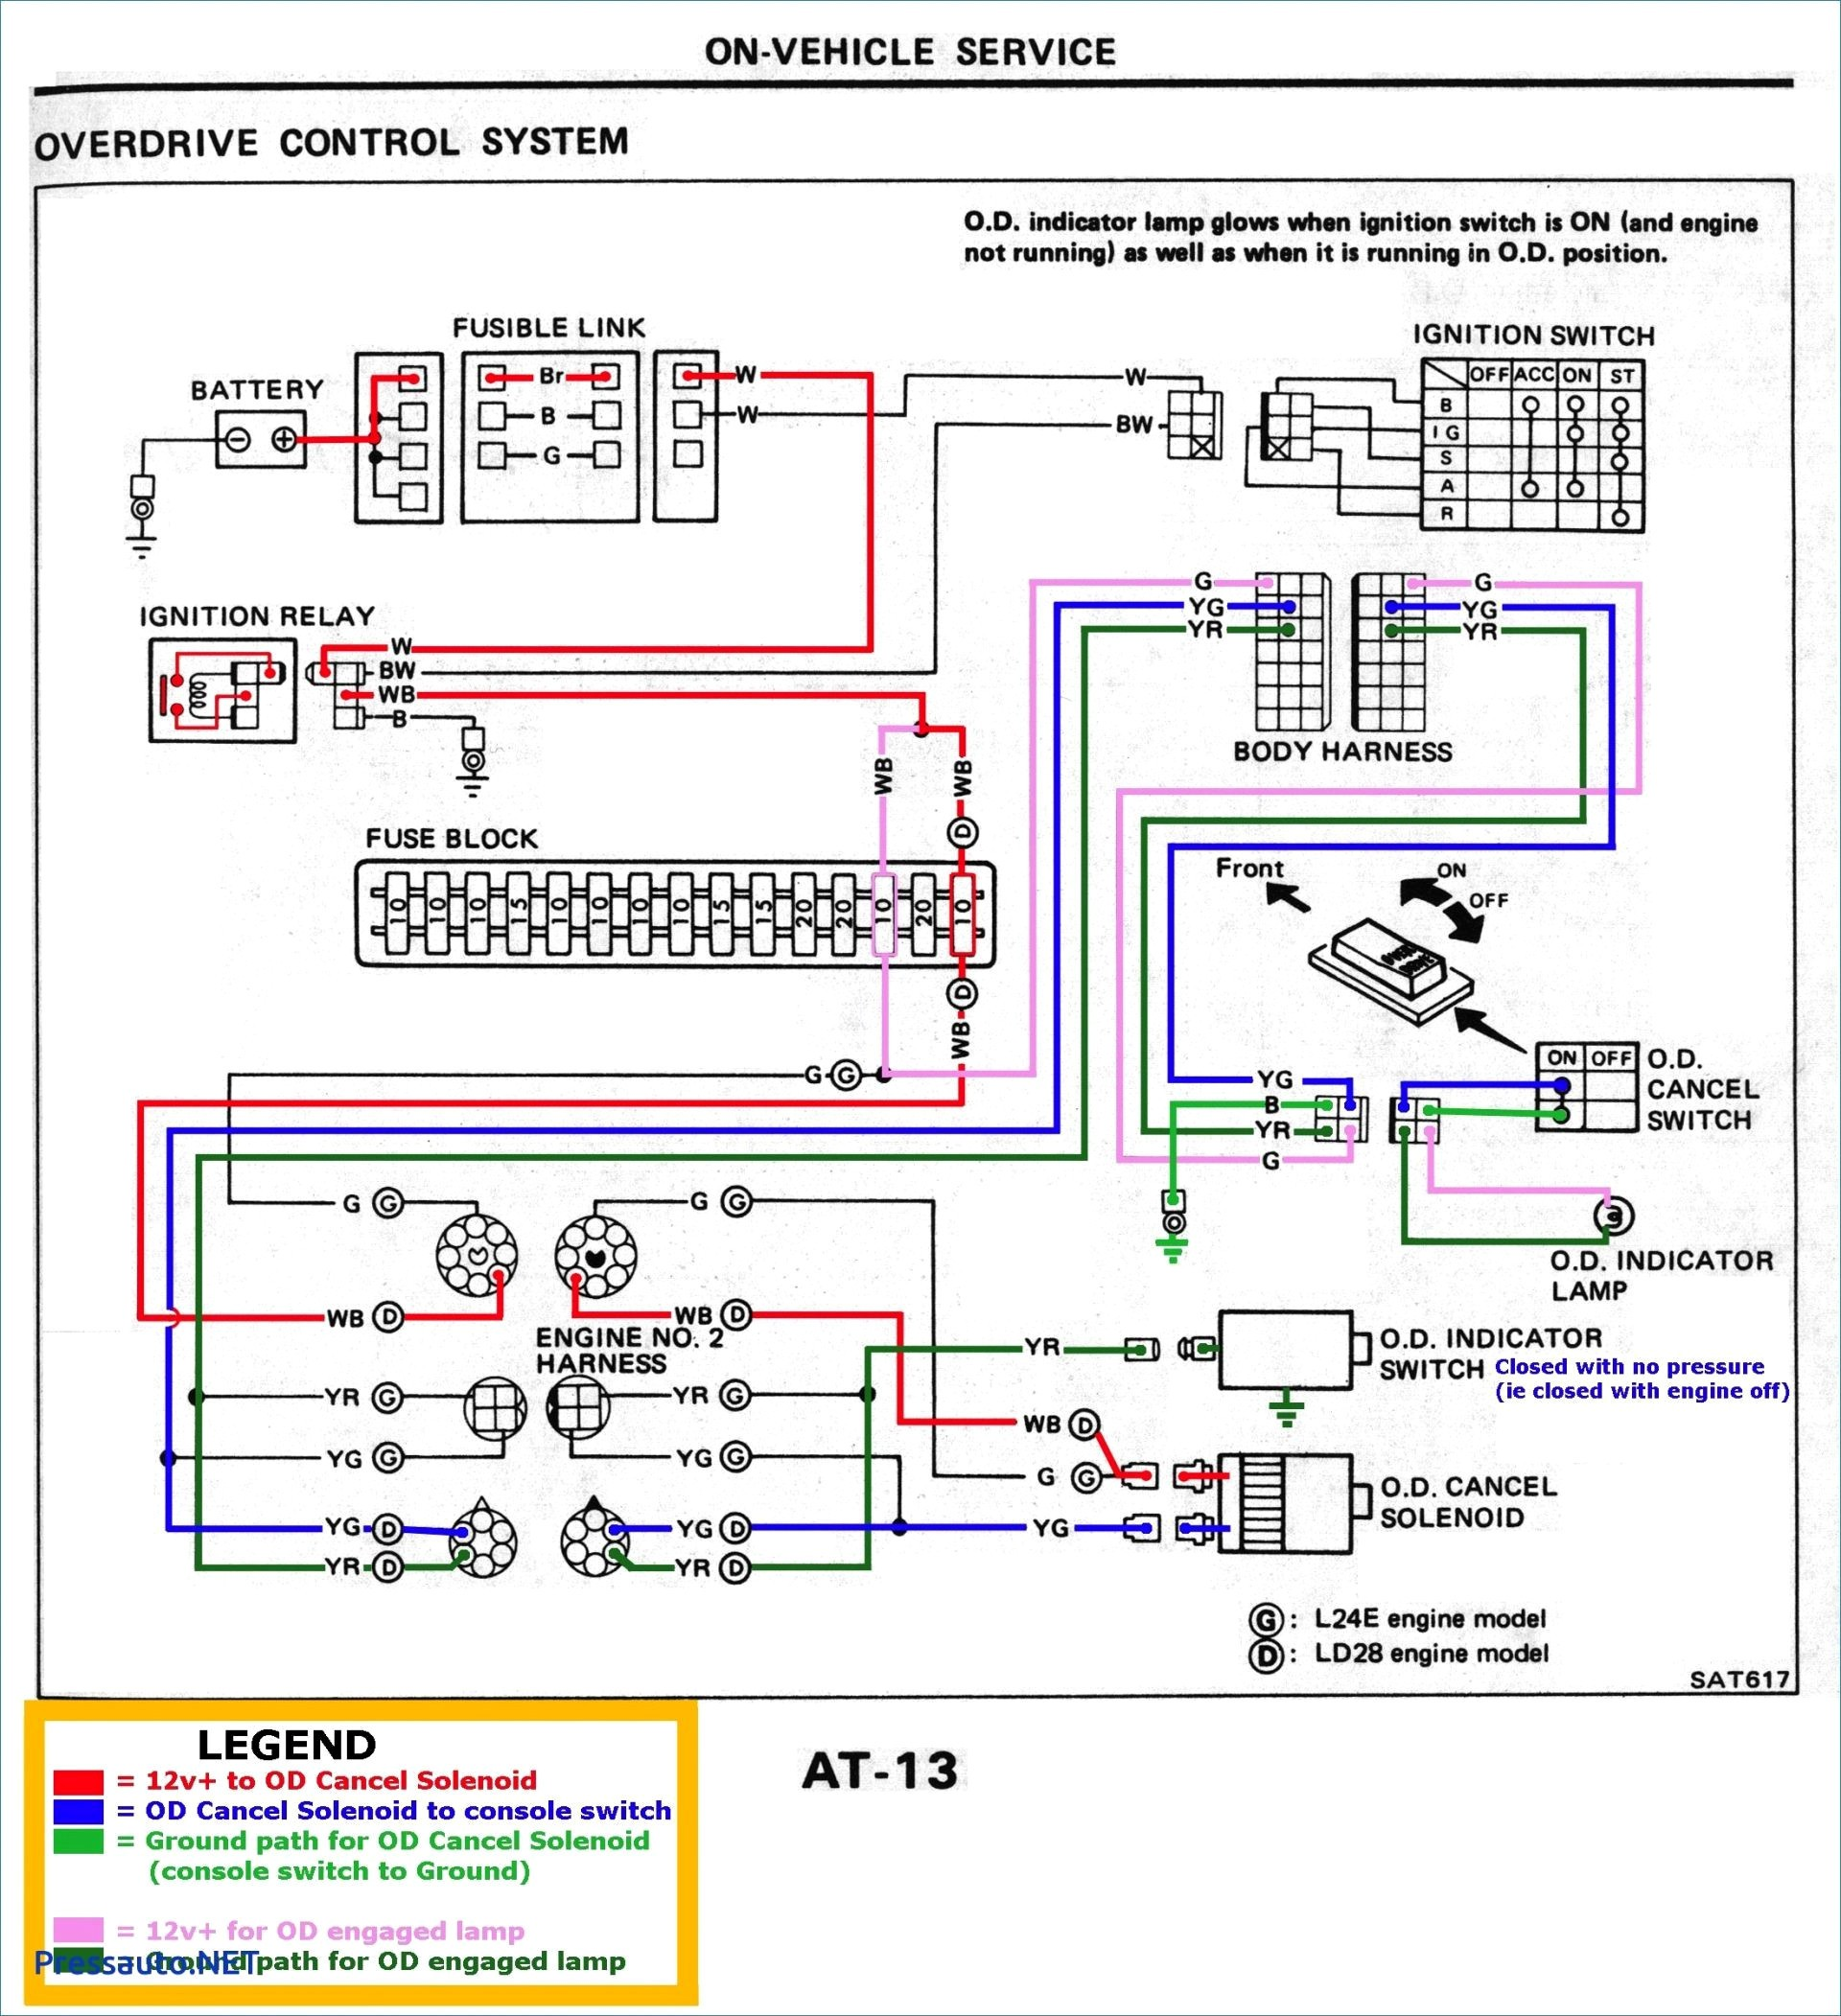 1979 Chevy Truck Radio Wiring Diagram 2006 Malibu Radio Wiring Wiring Diagram Used Of 1979 Chevy Truck Radio Wiring Diagram